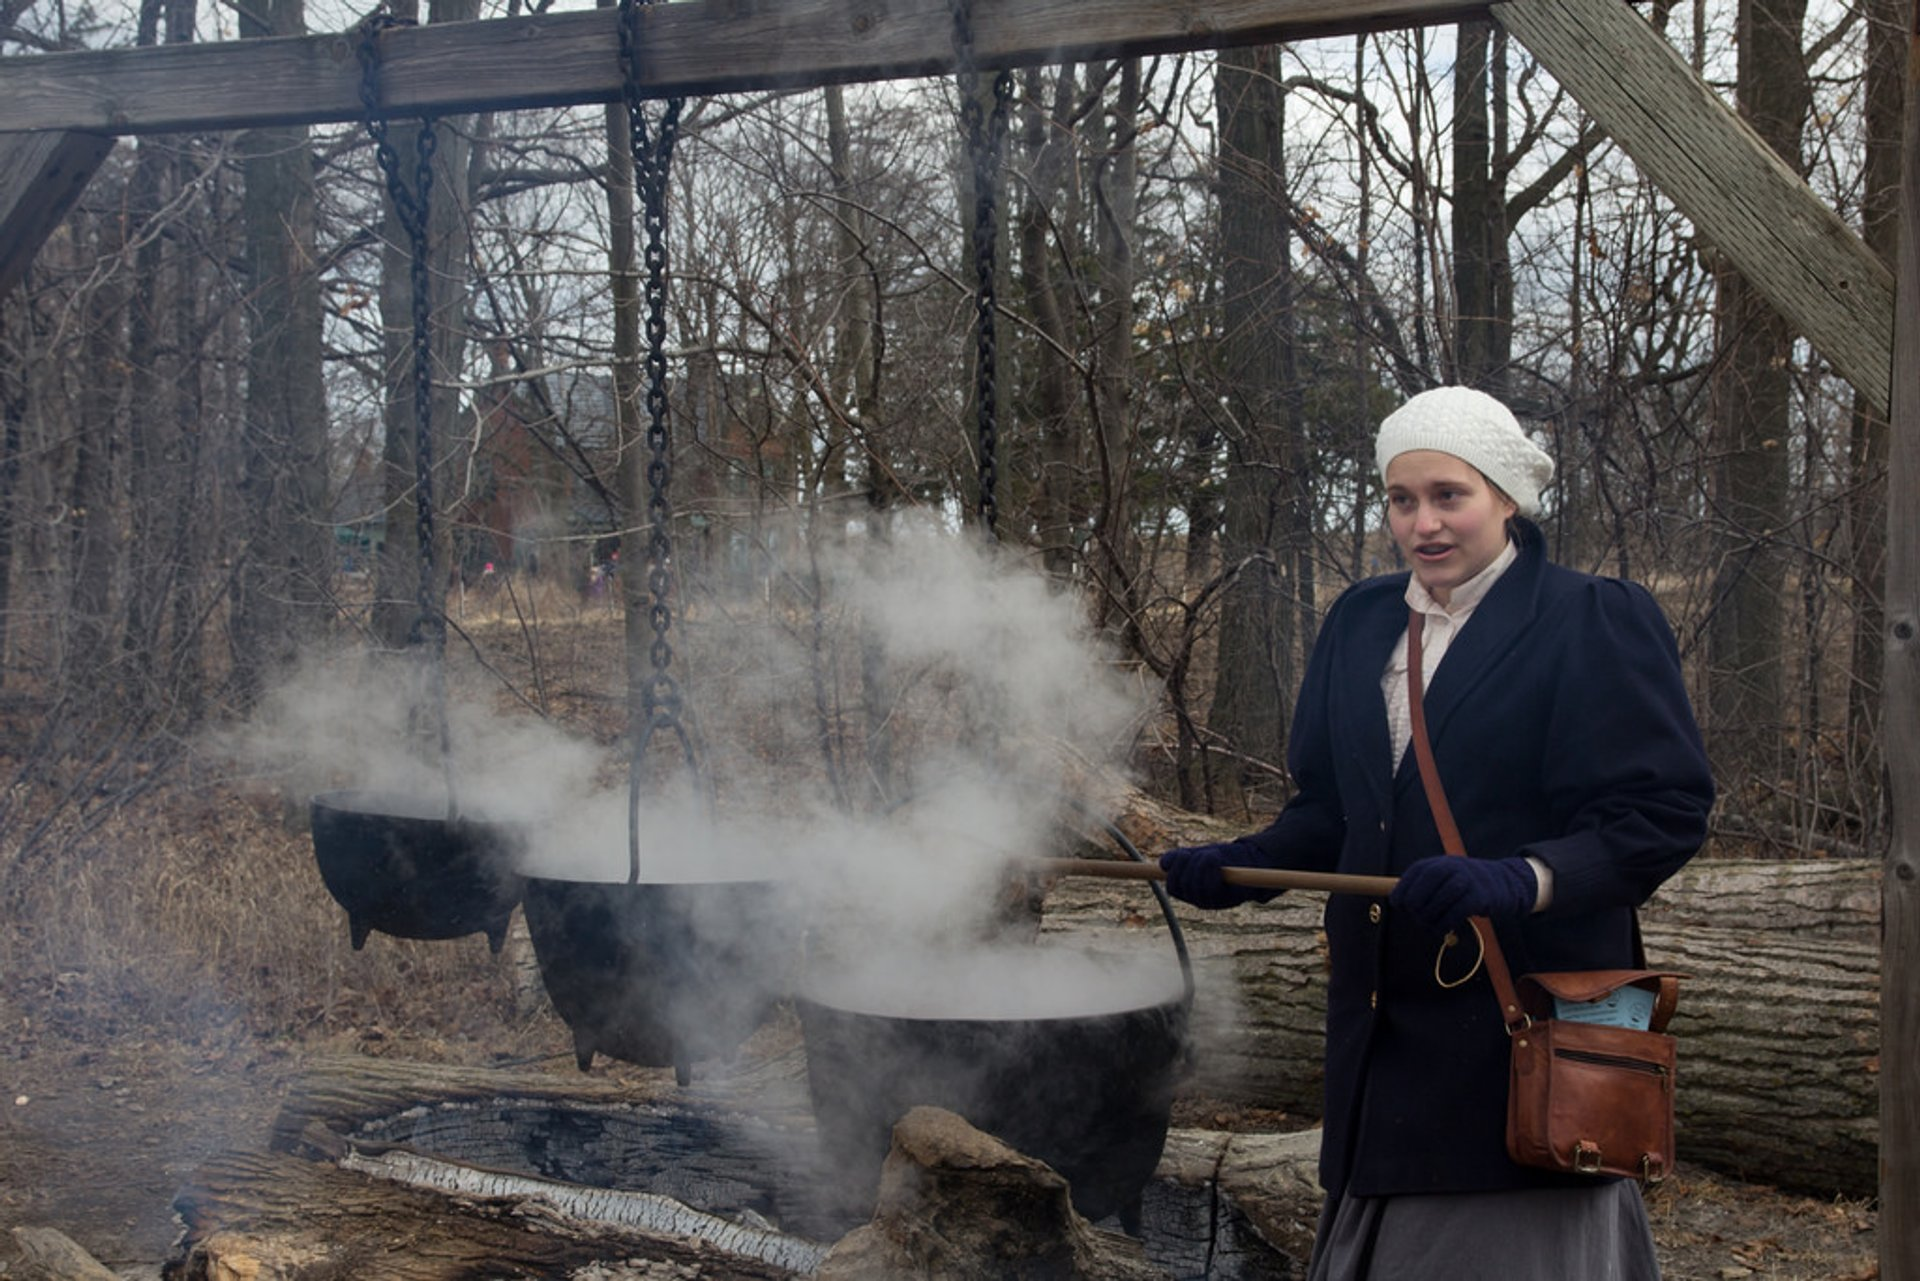 Cooking fresh maple syrup in Bronte Creek Maple Syrup Festival 2020